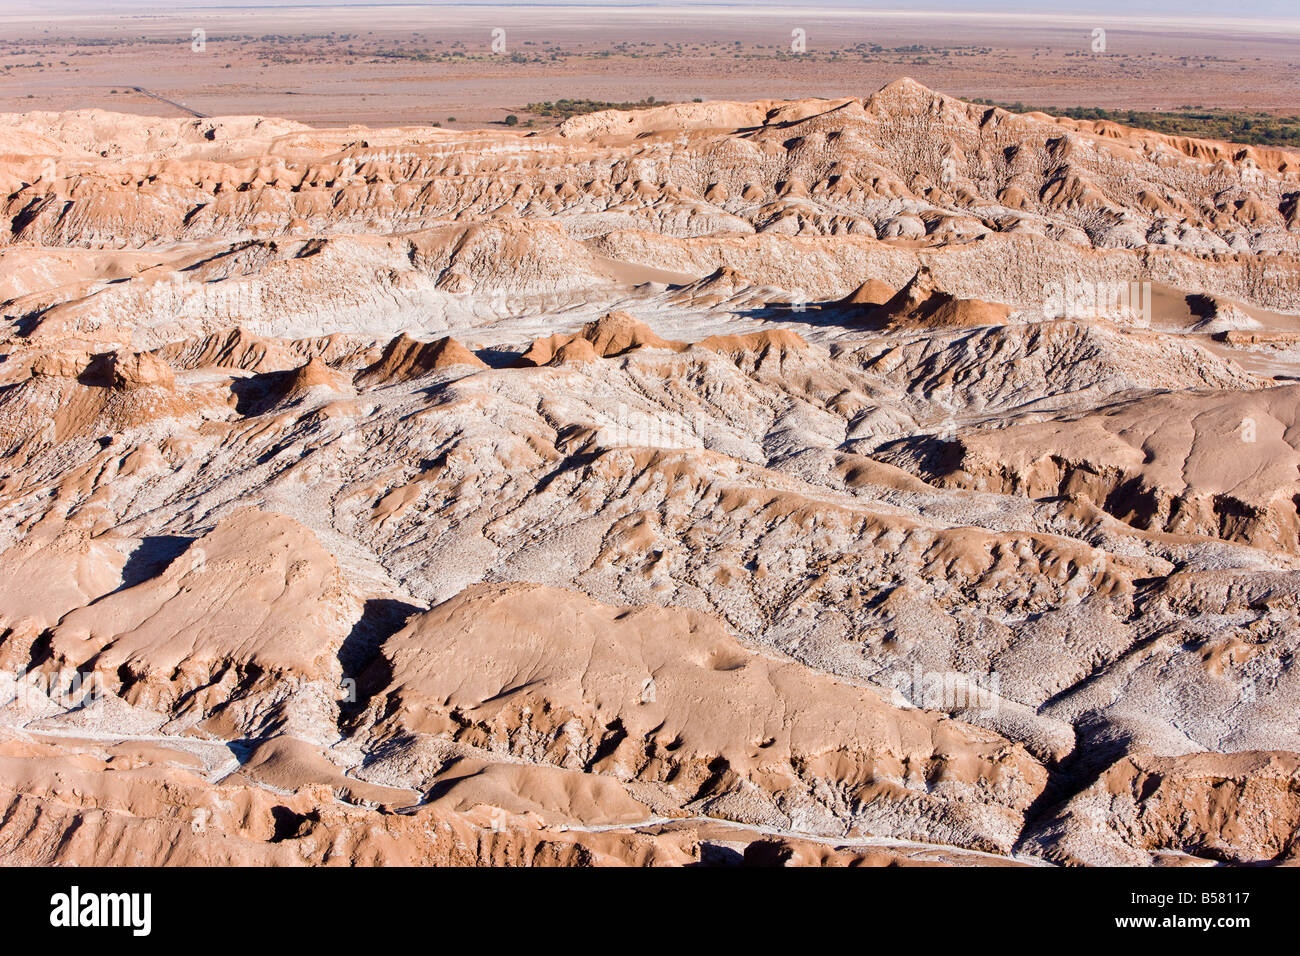 Valle de la Luna (Valley of the Moon), Atacama Desert, Norte Grande, Chile, South America - Stock Image